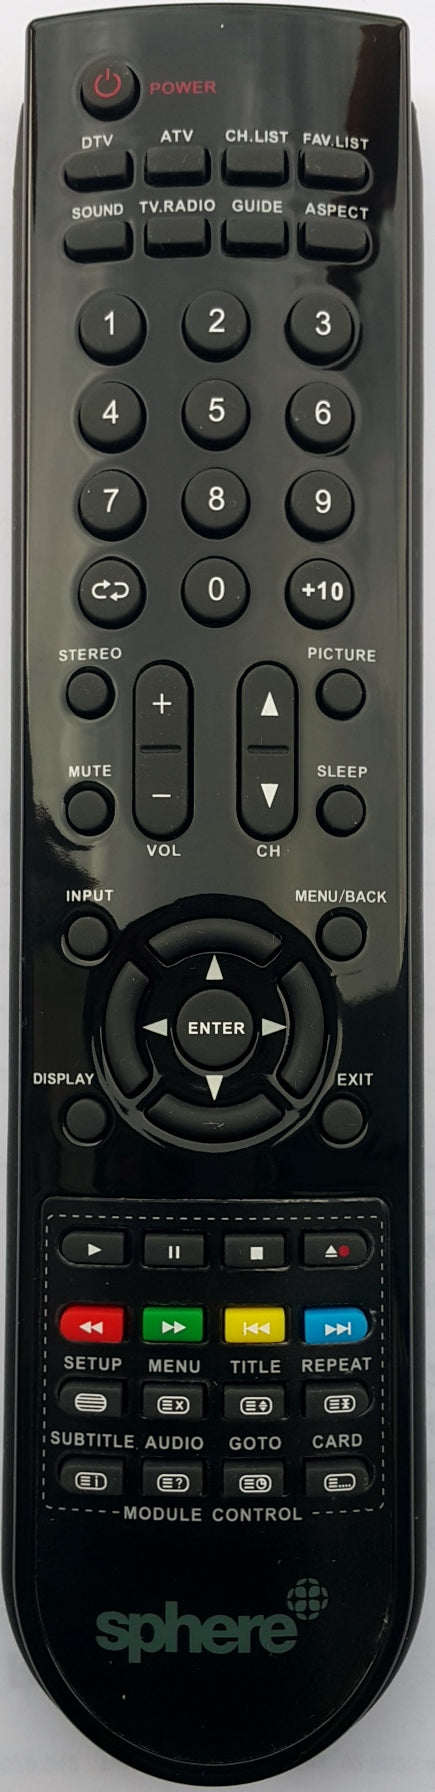 ORIGINAL SPHERE REMOTE CONTROL 90005350 - CTC-A22LCDTVDVD LCD TV